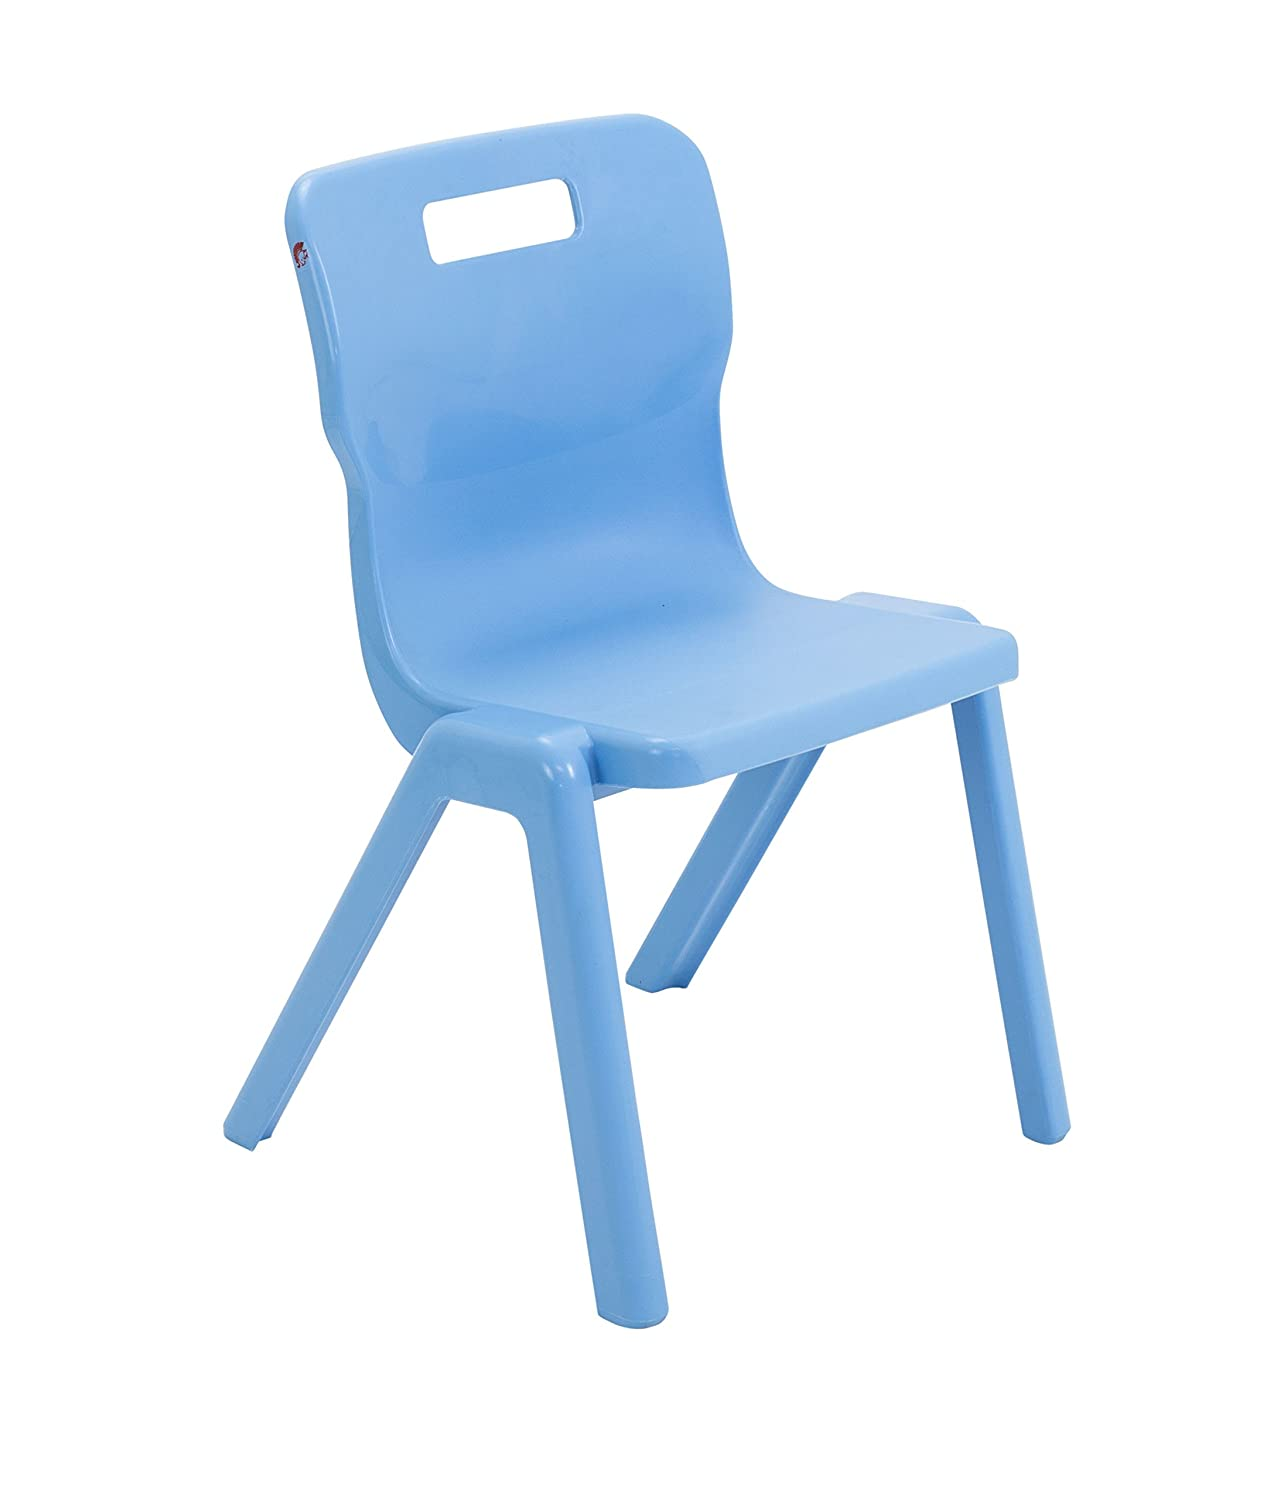 Titan One Piece Classroom Chair, Plastic, Sky bluee, Size 4, Ages 89 Years, Pack of 3